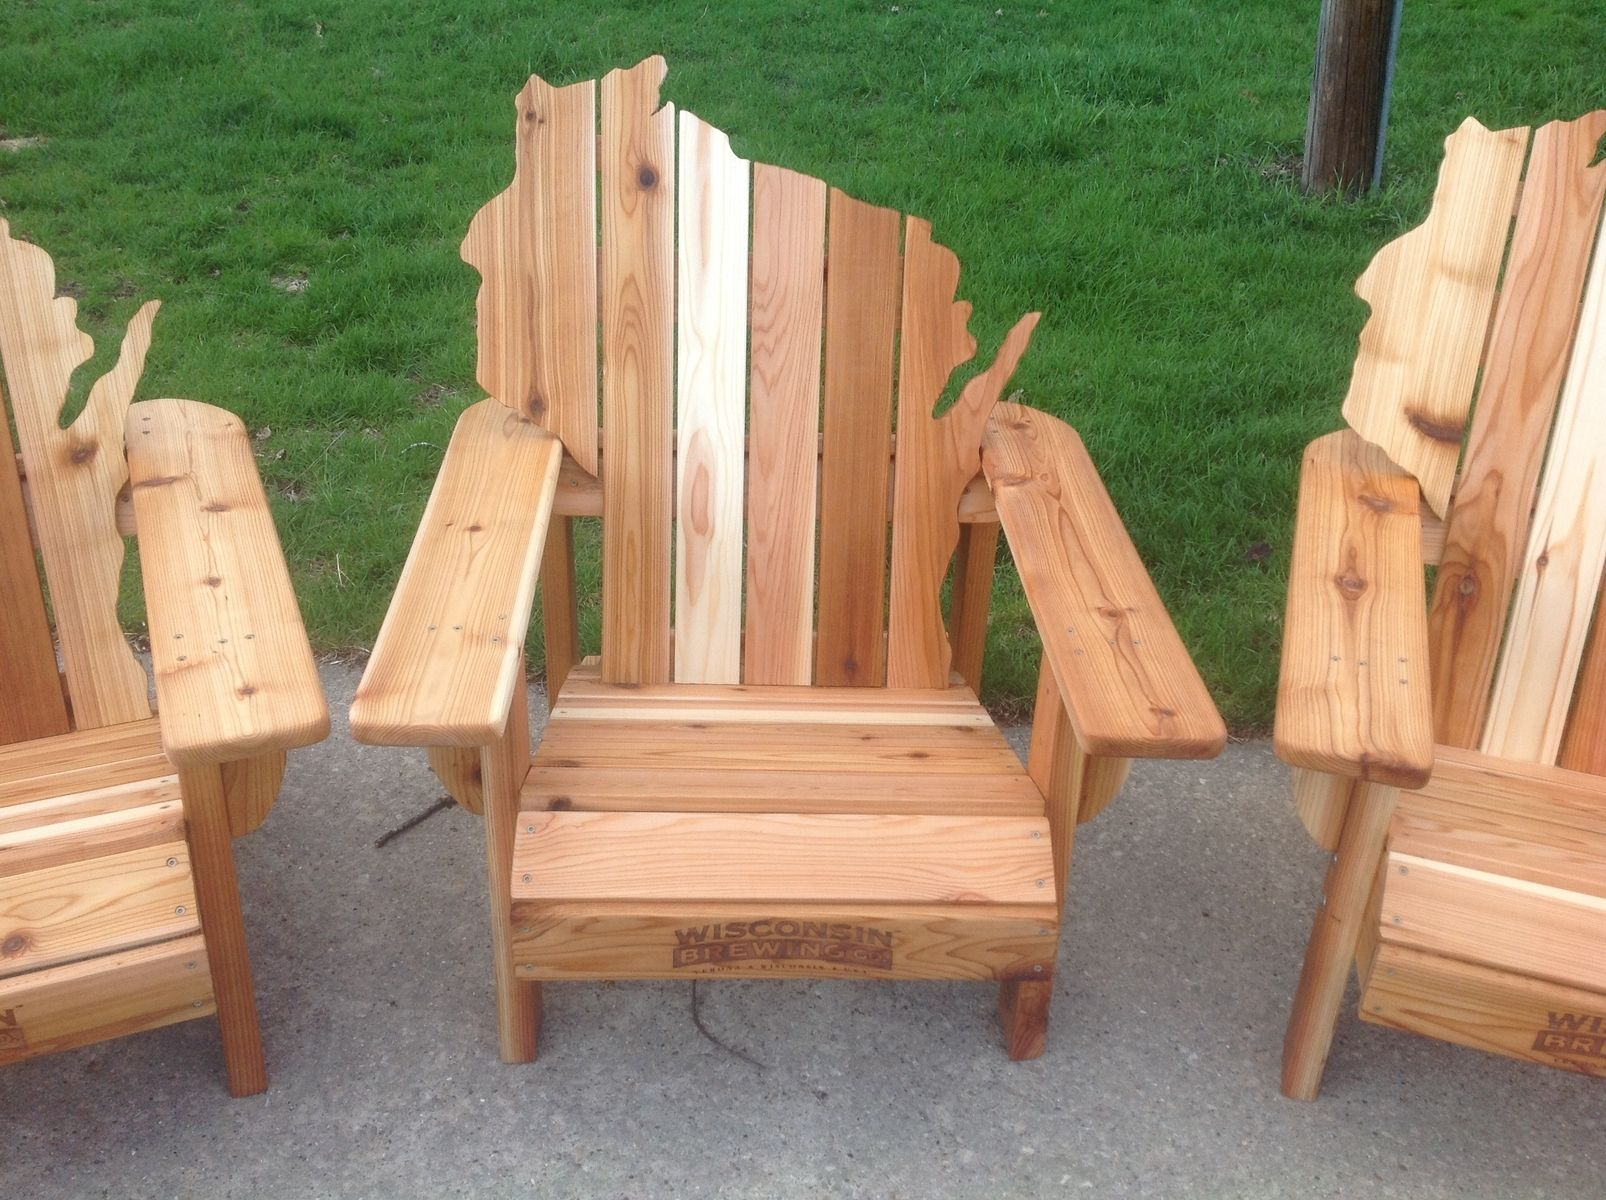 Personalized Chairs Handmade Cedar Adirondack Wisconsin Chairs With